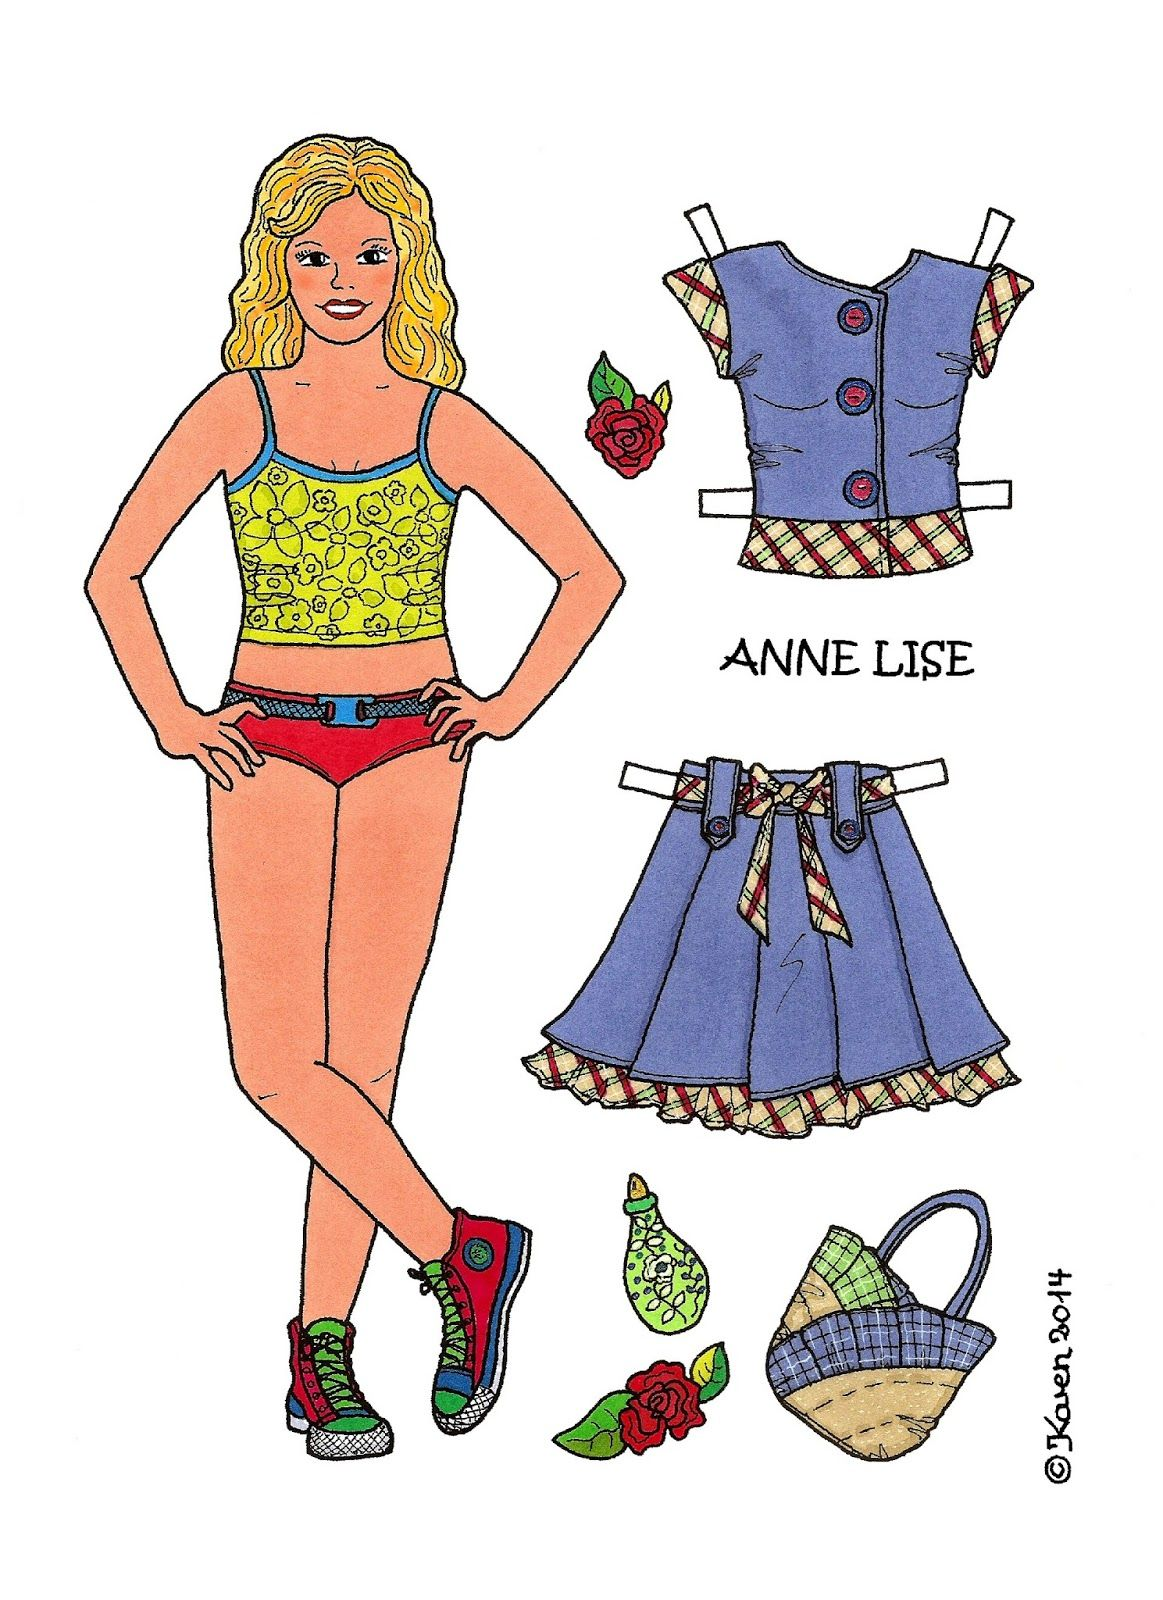 ANNE LISE from Karen's Paper Dolls  1 of 5